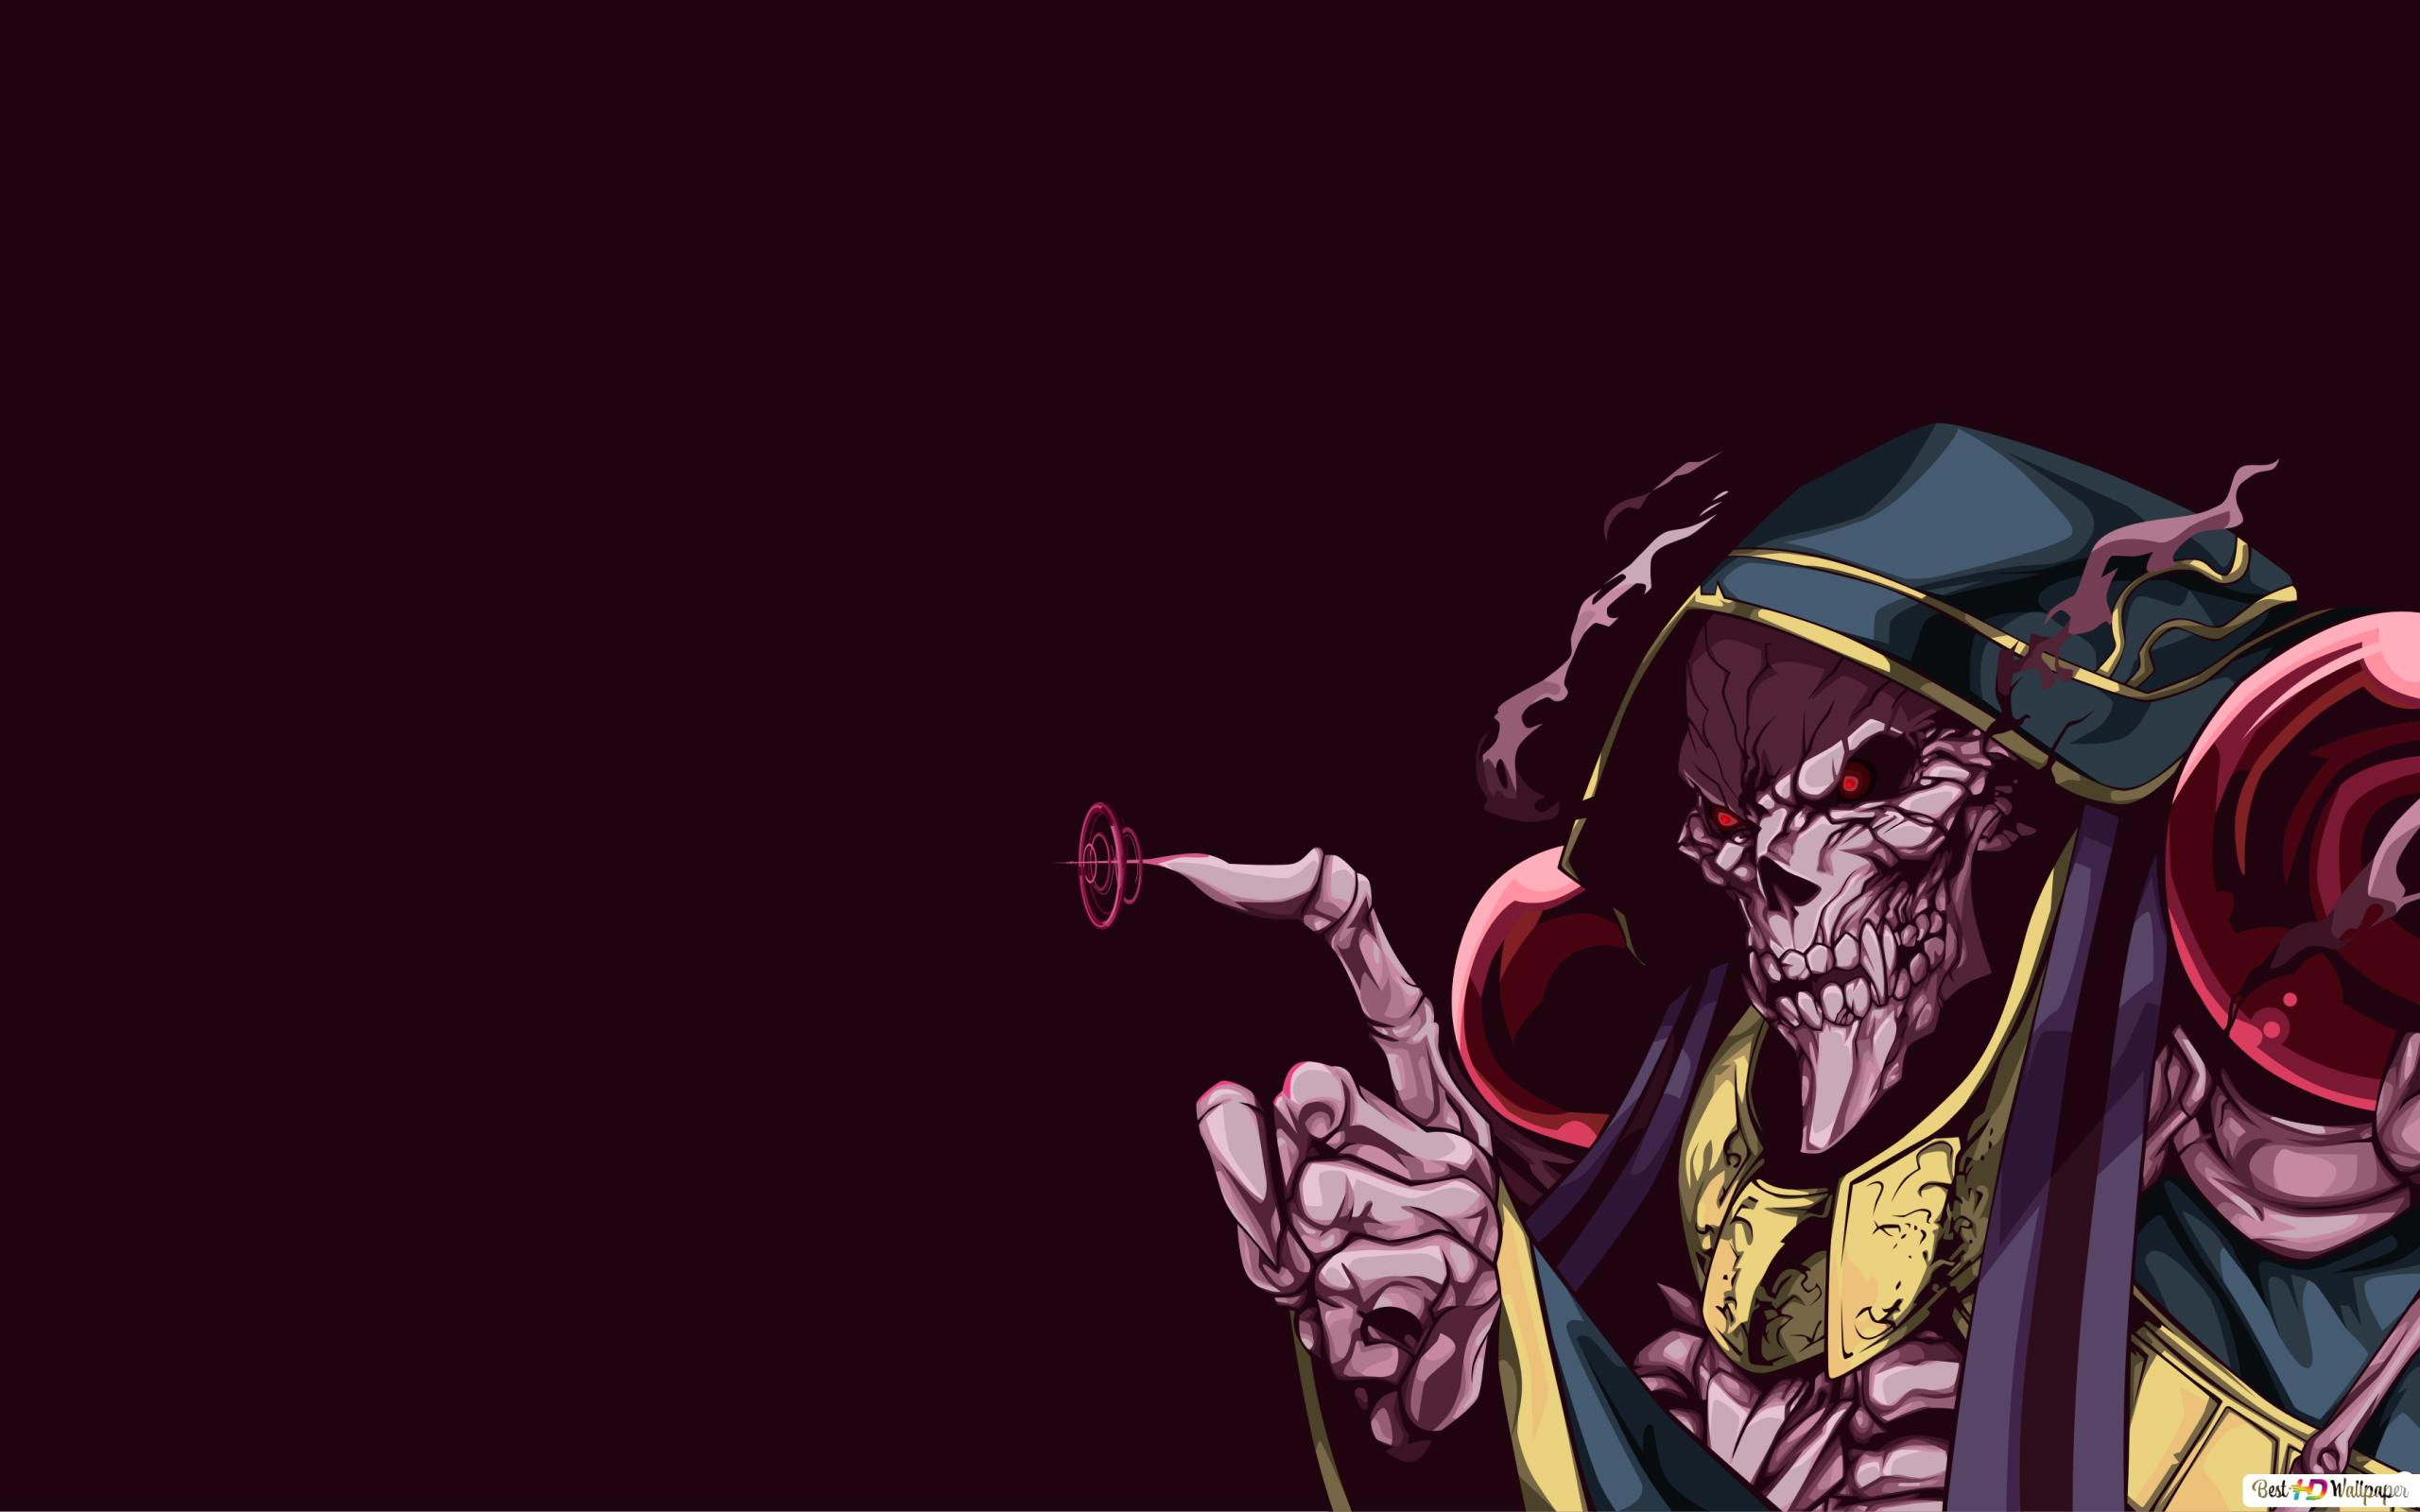 Ainz Ooal Gown Of Overlord Hd Wallpaper Download